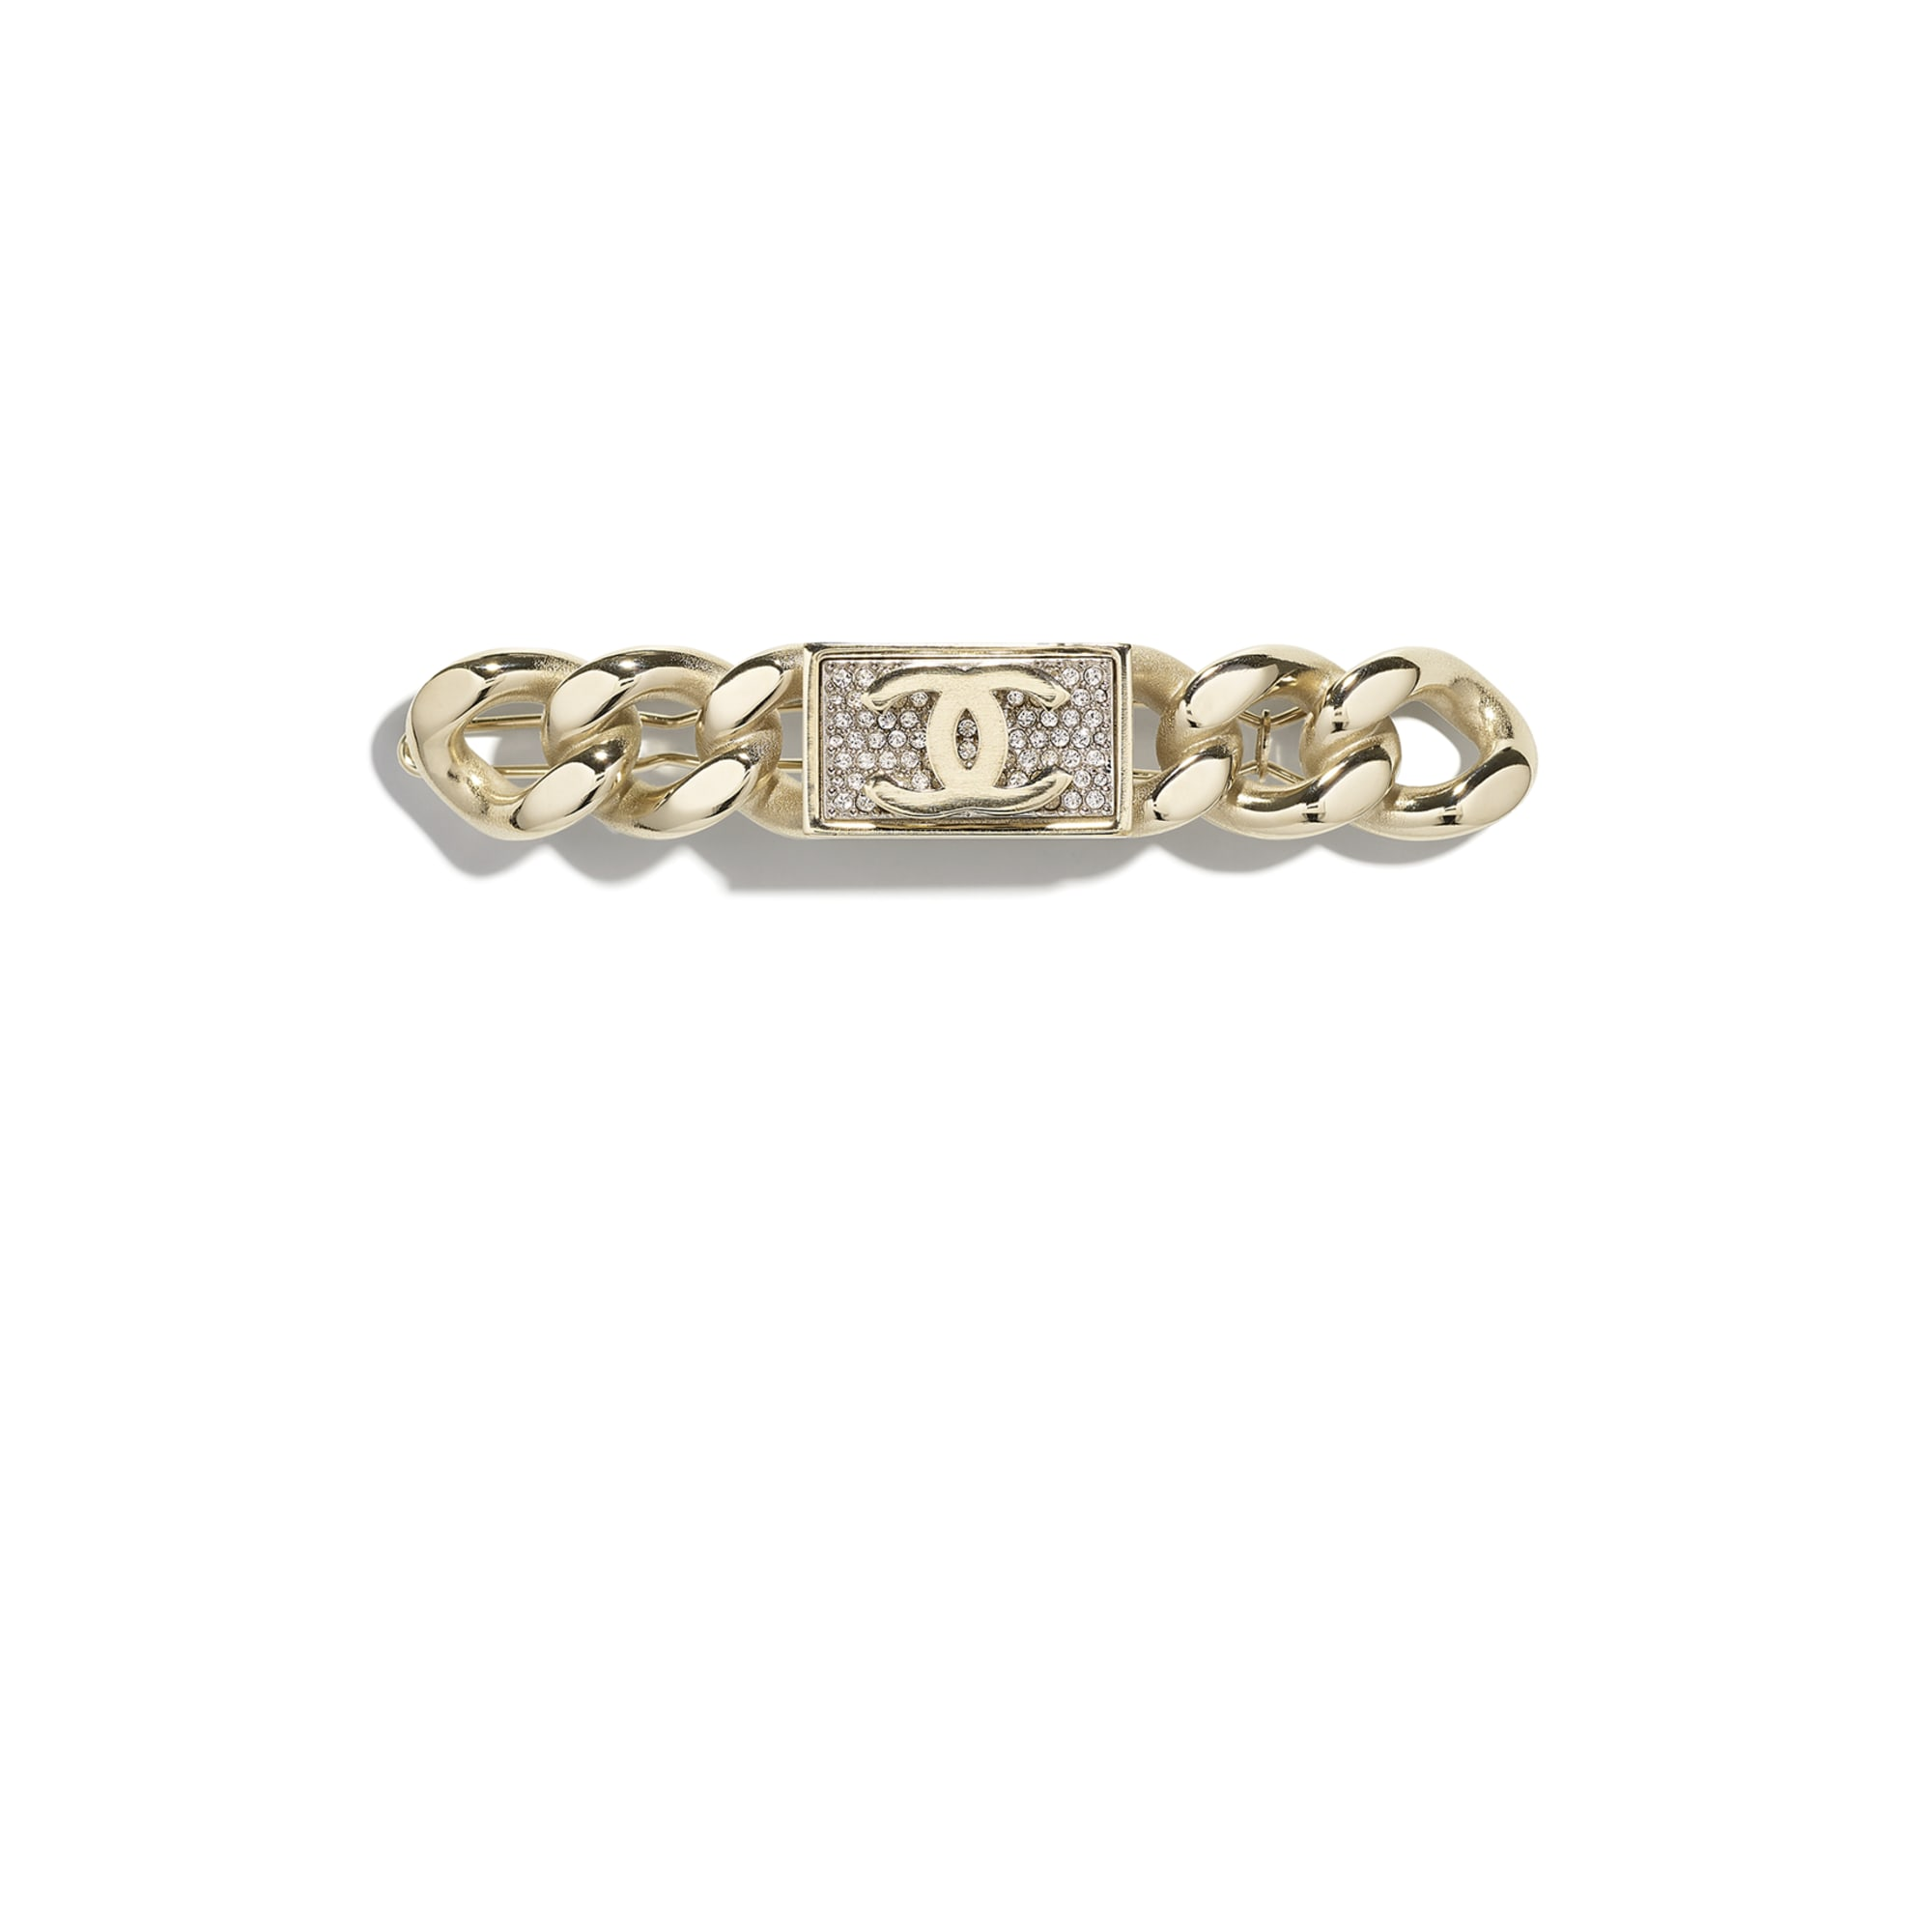 Hair Clip - Gold & Crystal - Metal & Diamantés - CHANEL - Default view - see standard sized version